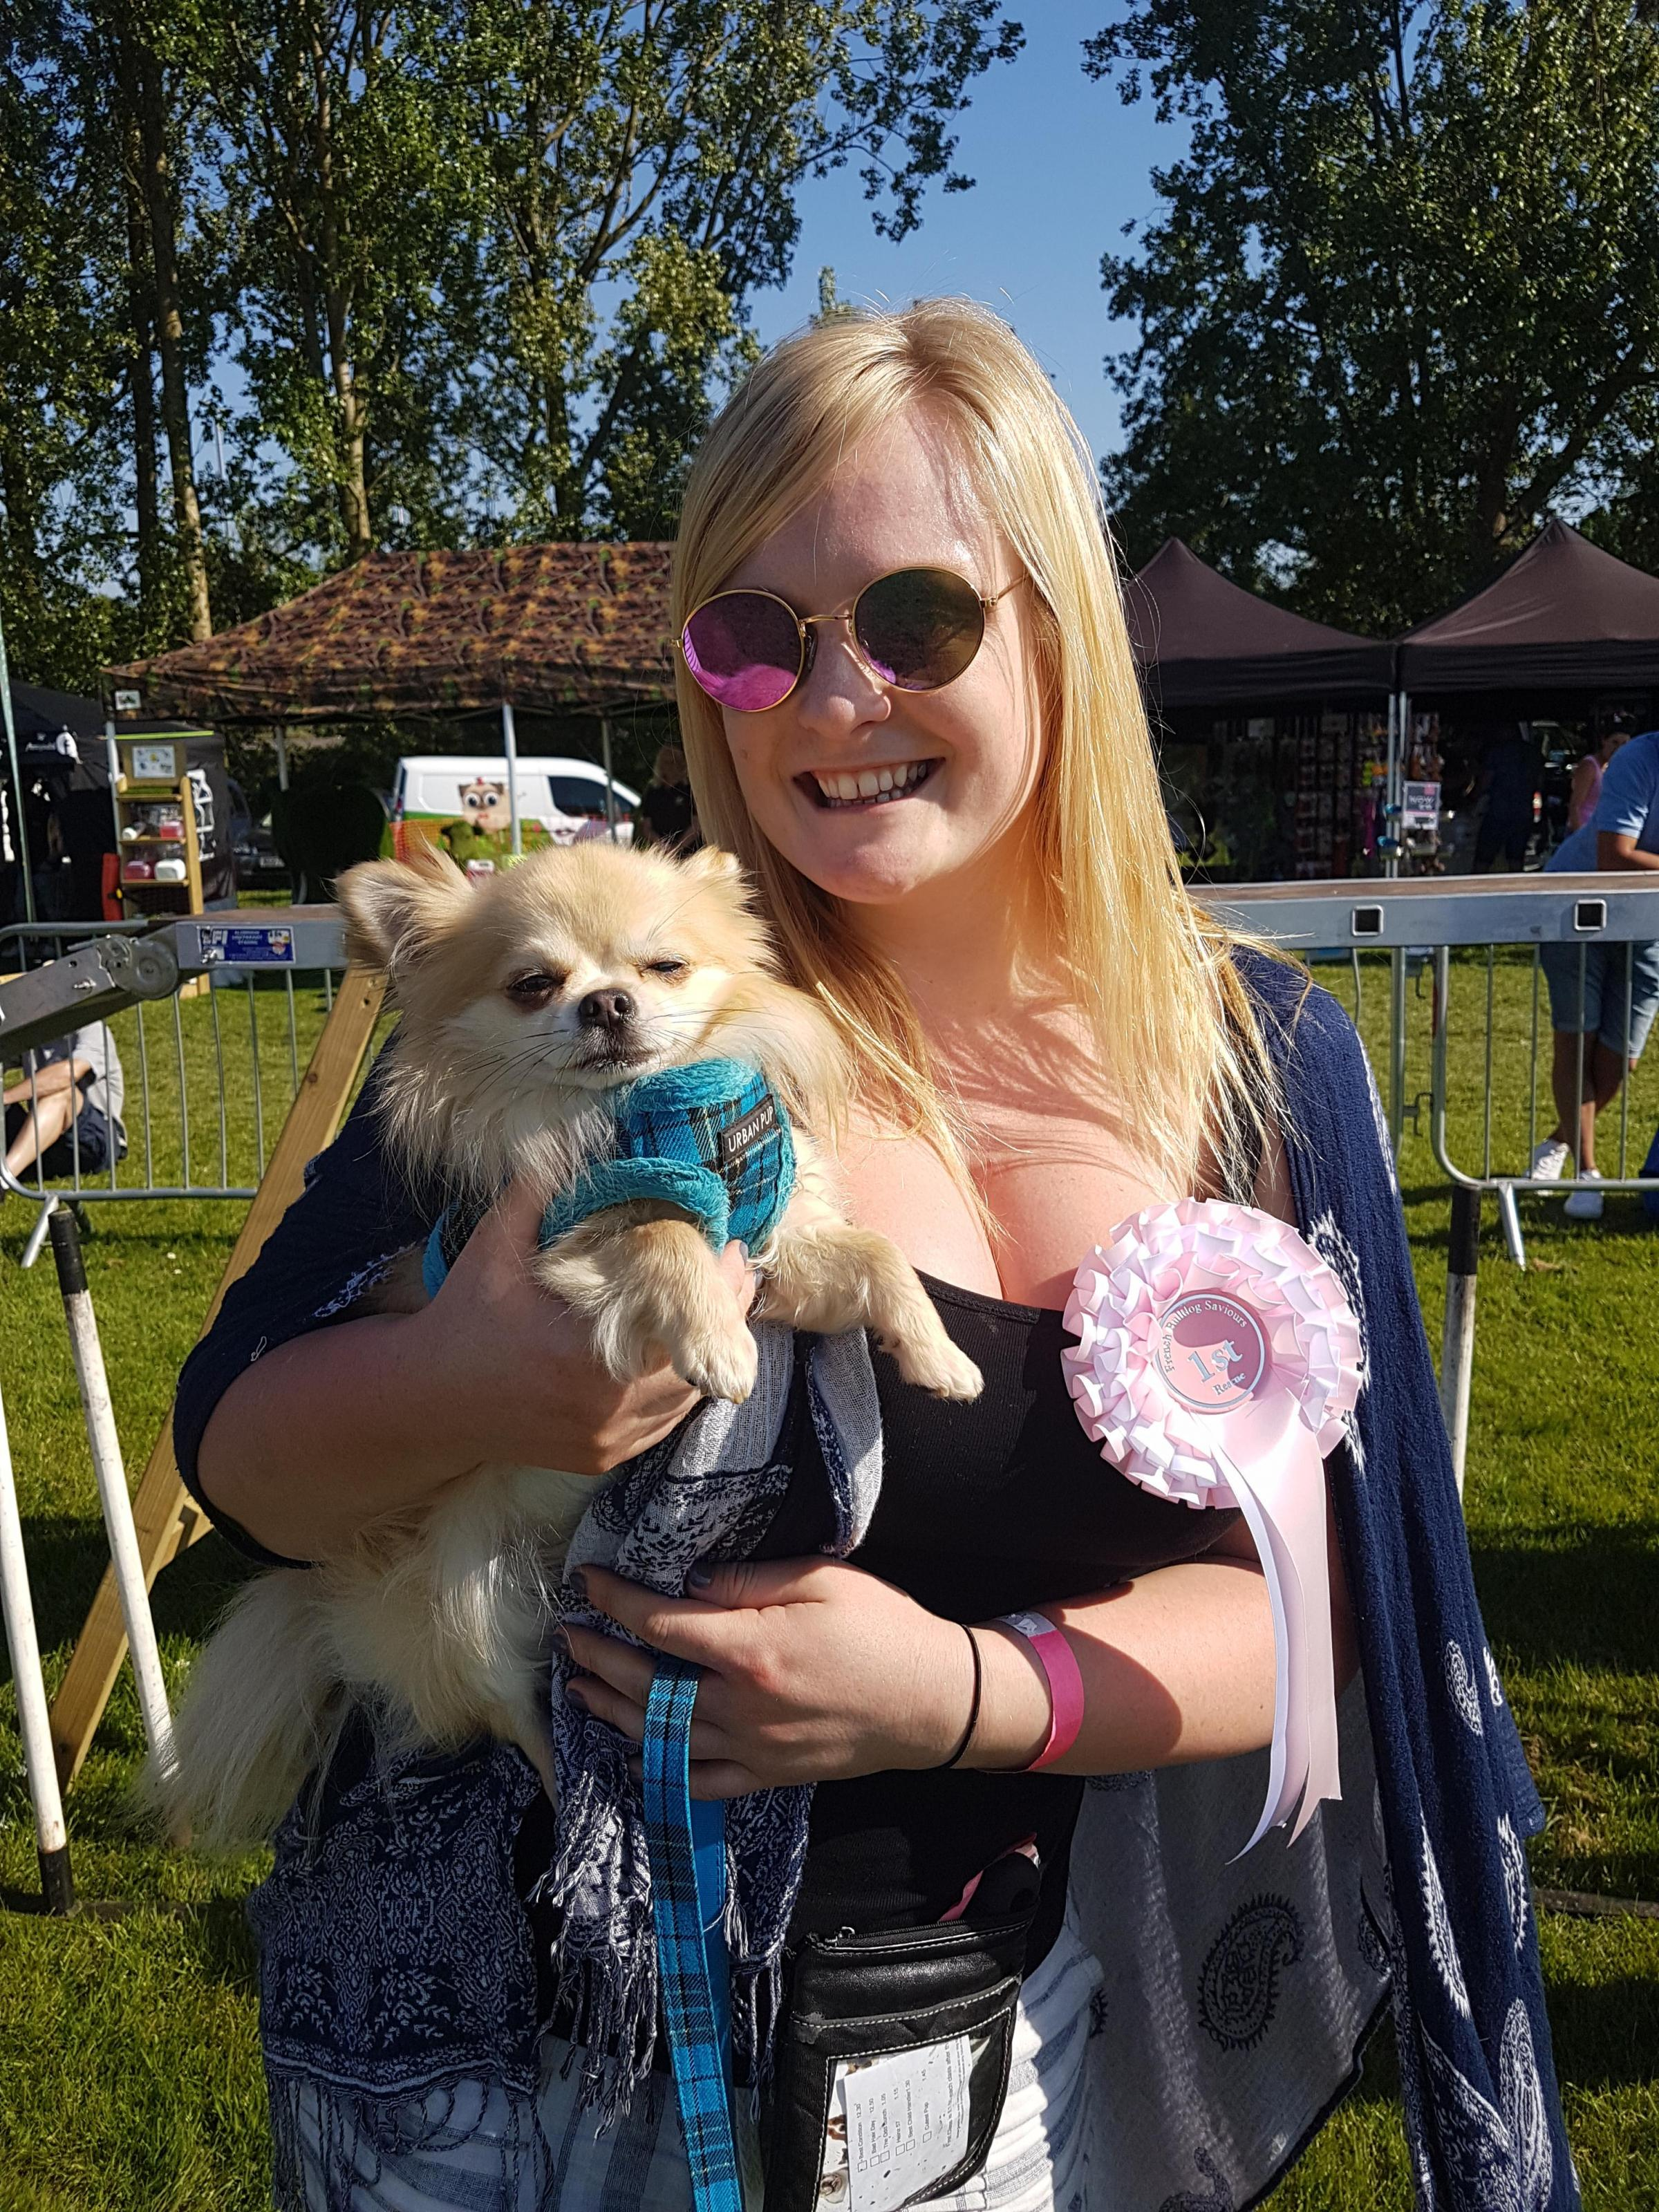 All About Dogs: The UK's Largest Festival for Dogs and Their Owners